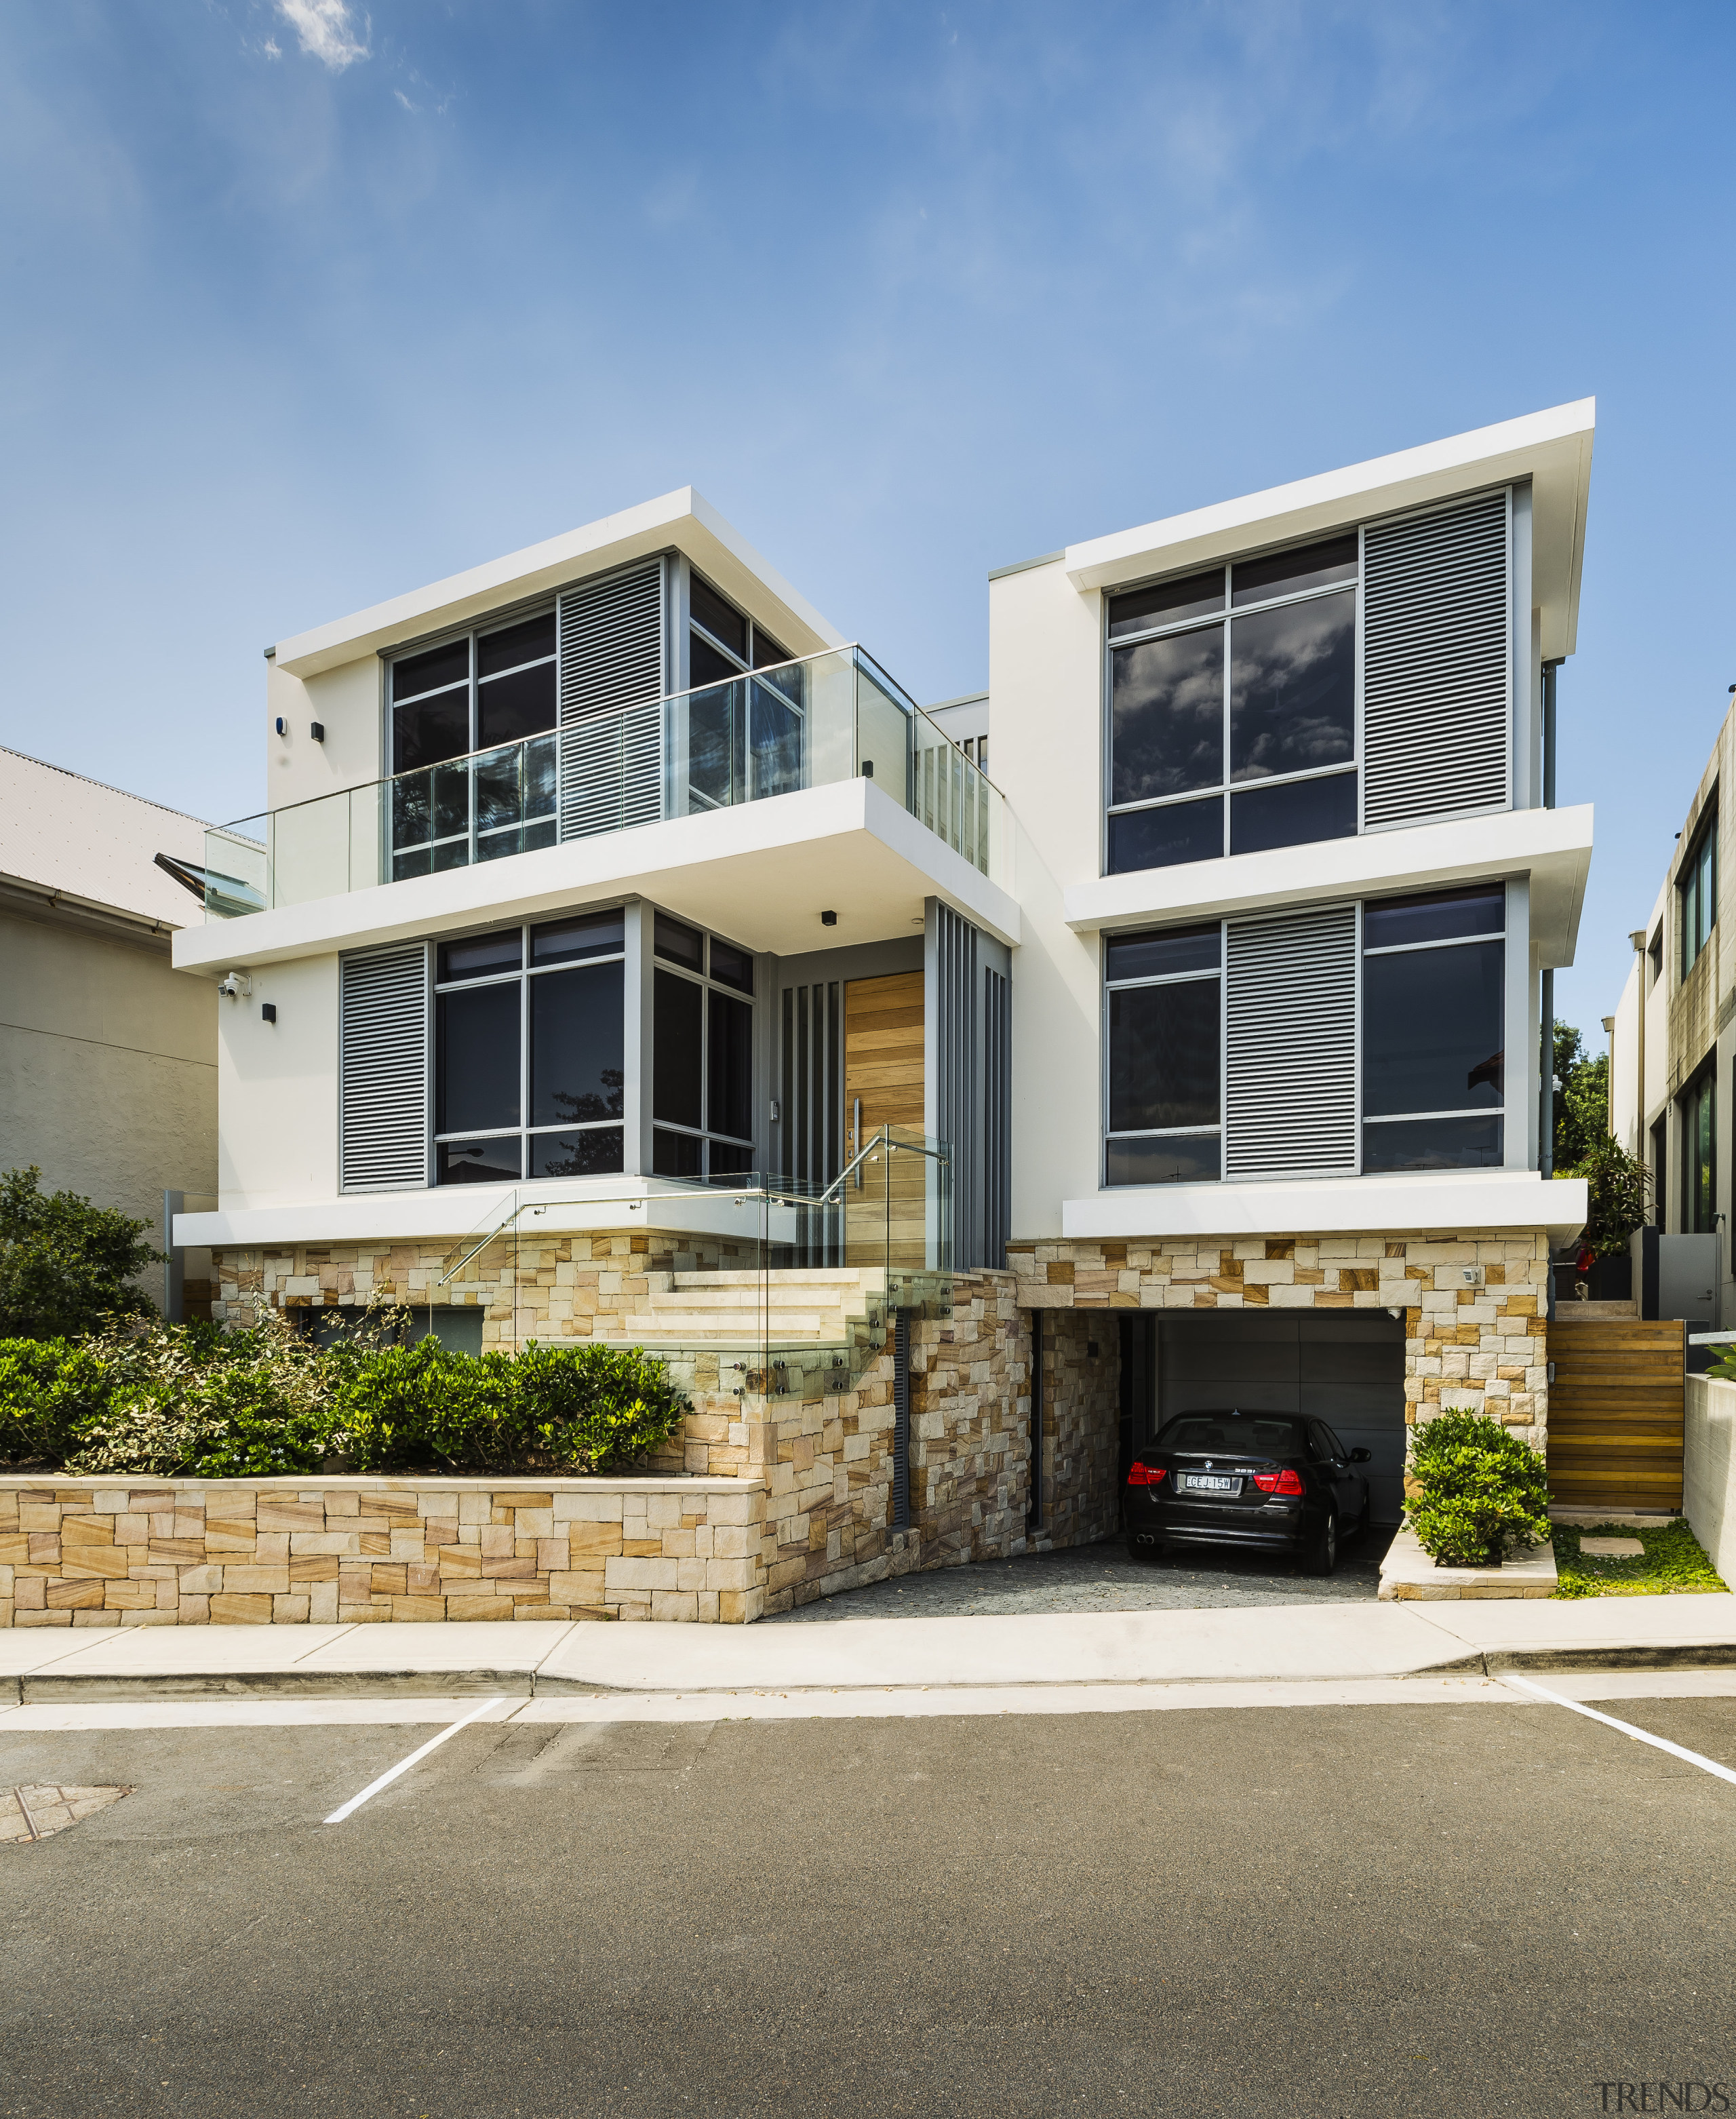 A base and front fence in randomly laid architecture, building, facade, home, house, residential area, siding, window, Giles & Tribe Architecture,  Tida Awards,  Bondi Beach